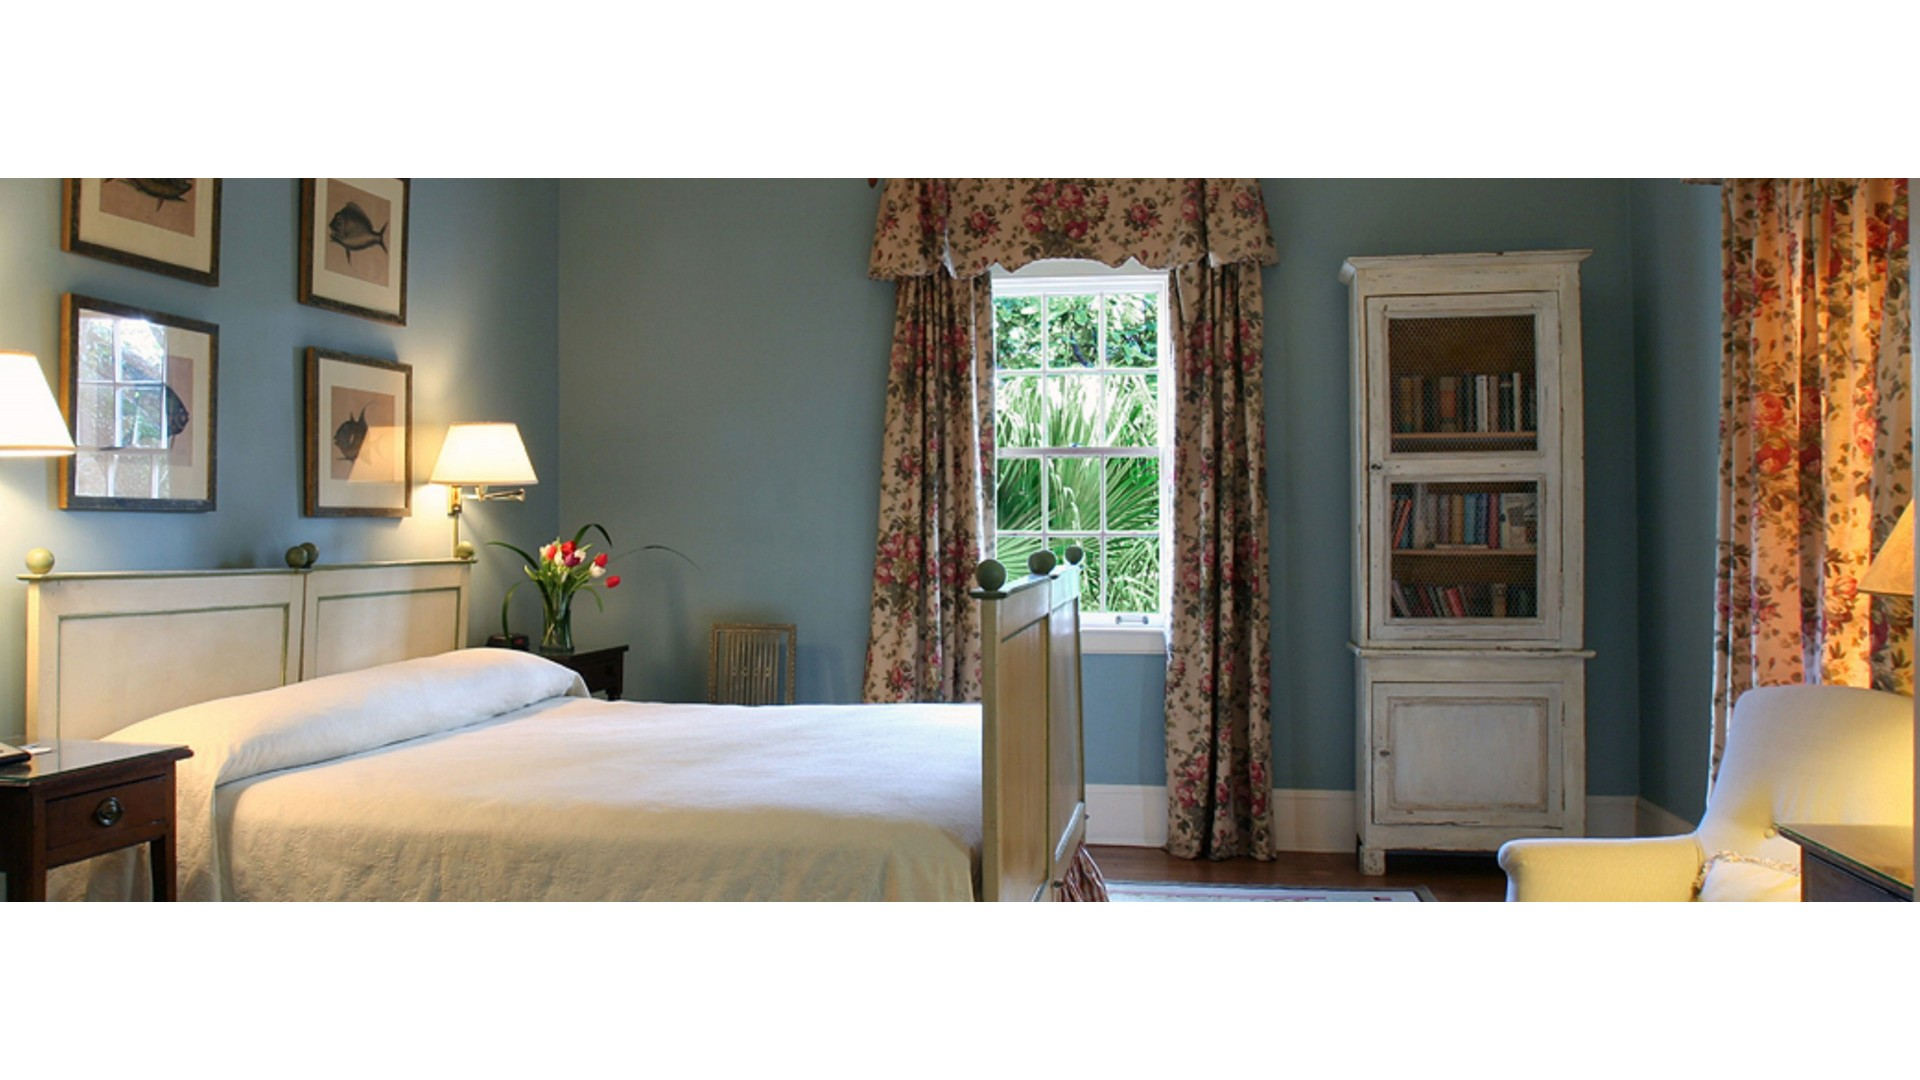 Soniat House French Quarter New Orleans Louisiana Smith Hotels – Mr And Mrs Smith House Floor Plan